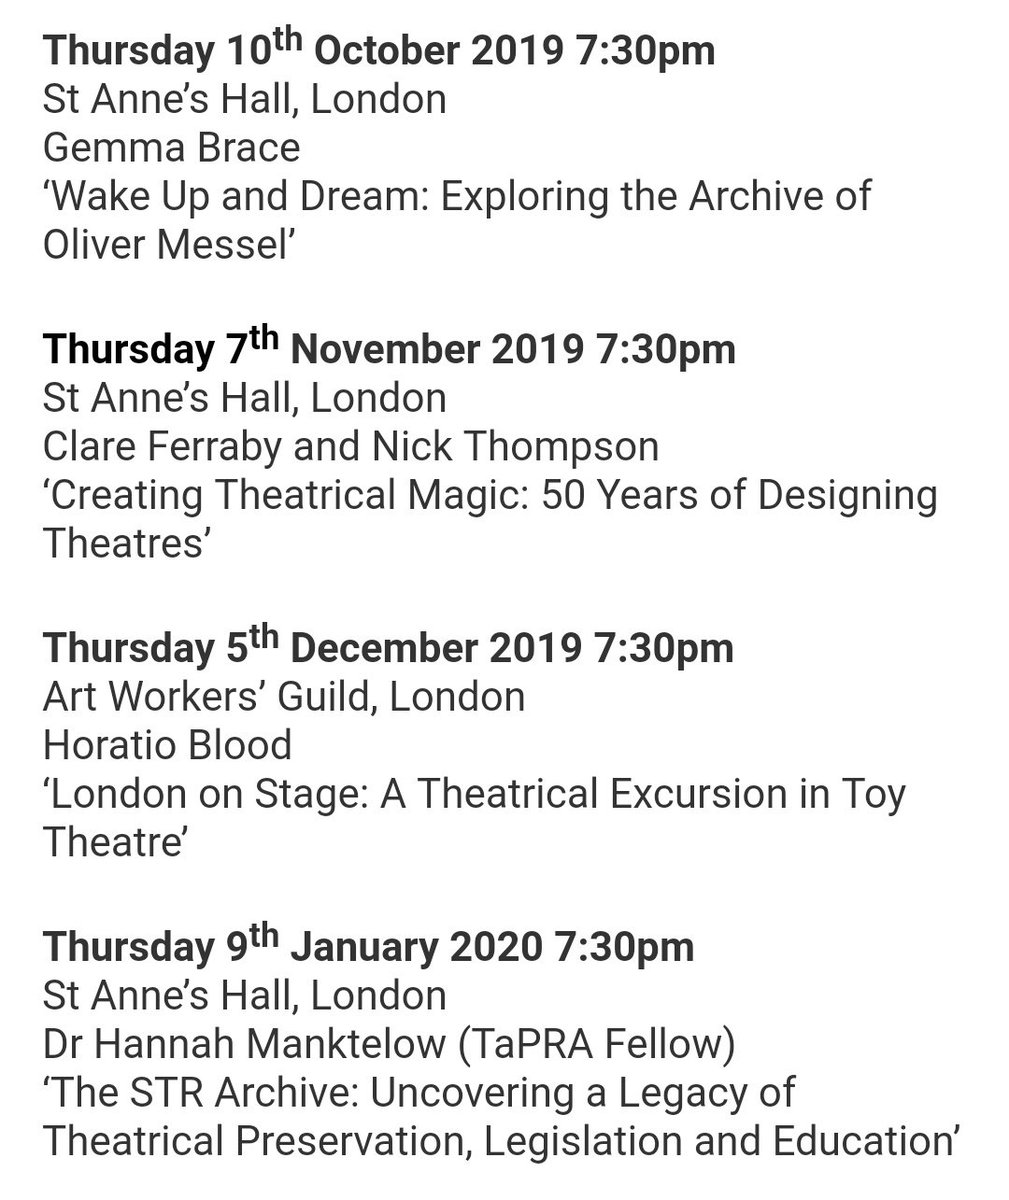 A wonderful free Lecture Series for 2019/2020 from @TheSTR! More info: str.org.uk/events/lecture…